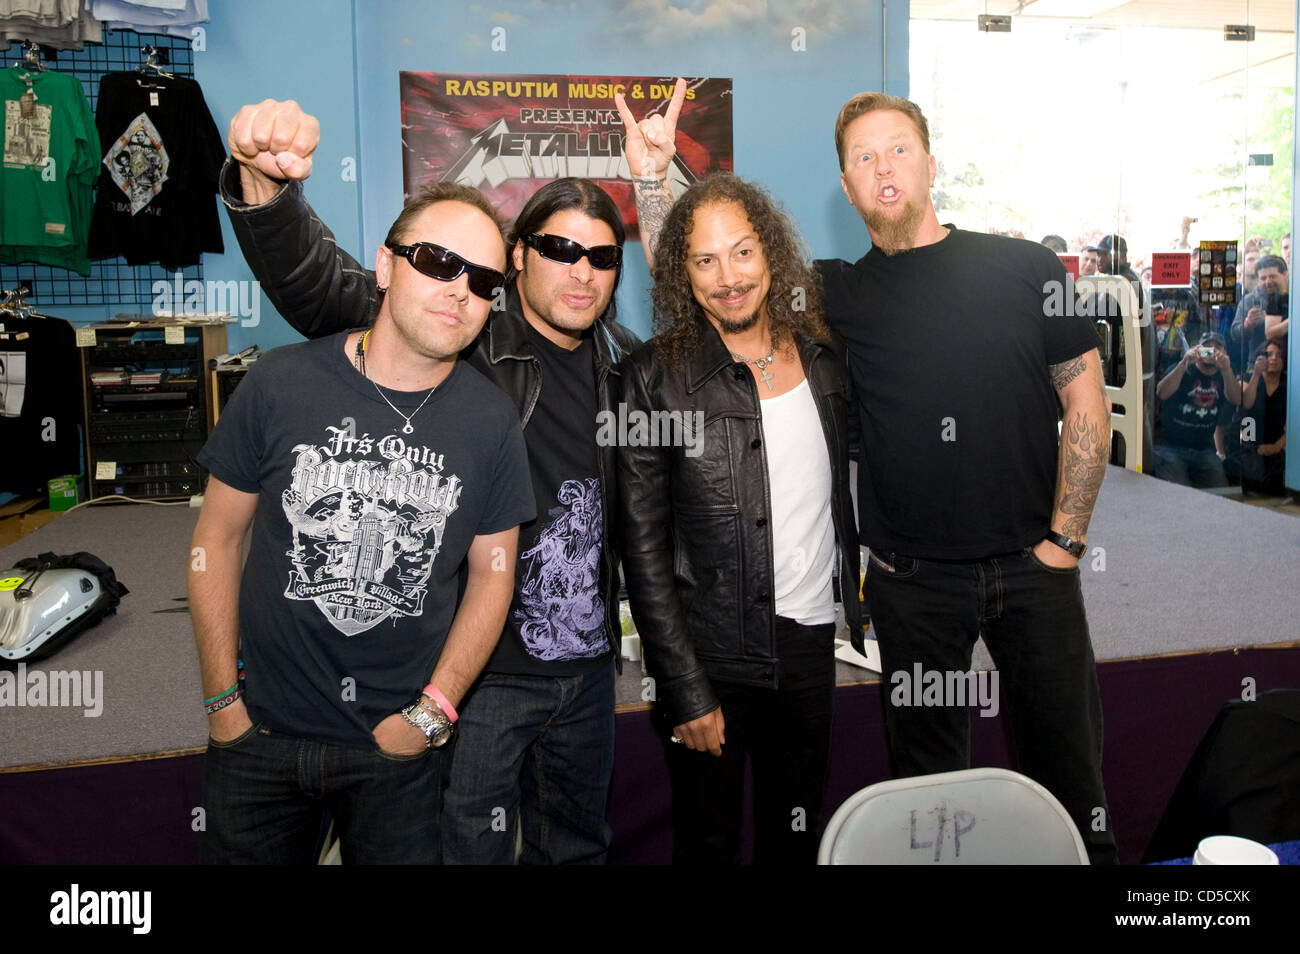 Apr 19 2008 mountain view california usa the heavy metal band apr 19 2008 mountain view california usa the heavy metal band metallica officially launched record store day with an in store signing and fan meet m4hsunfo Gallery